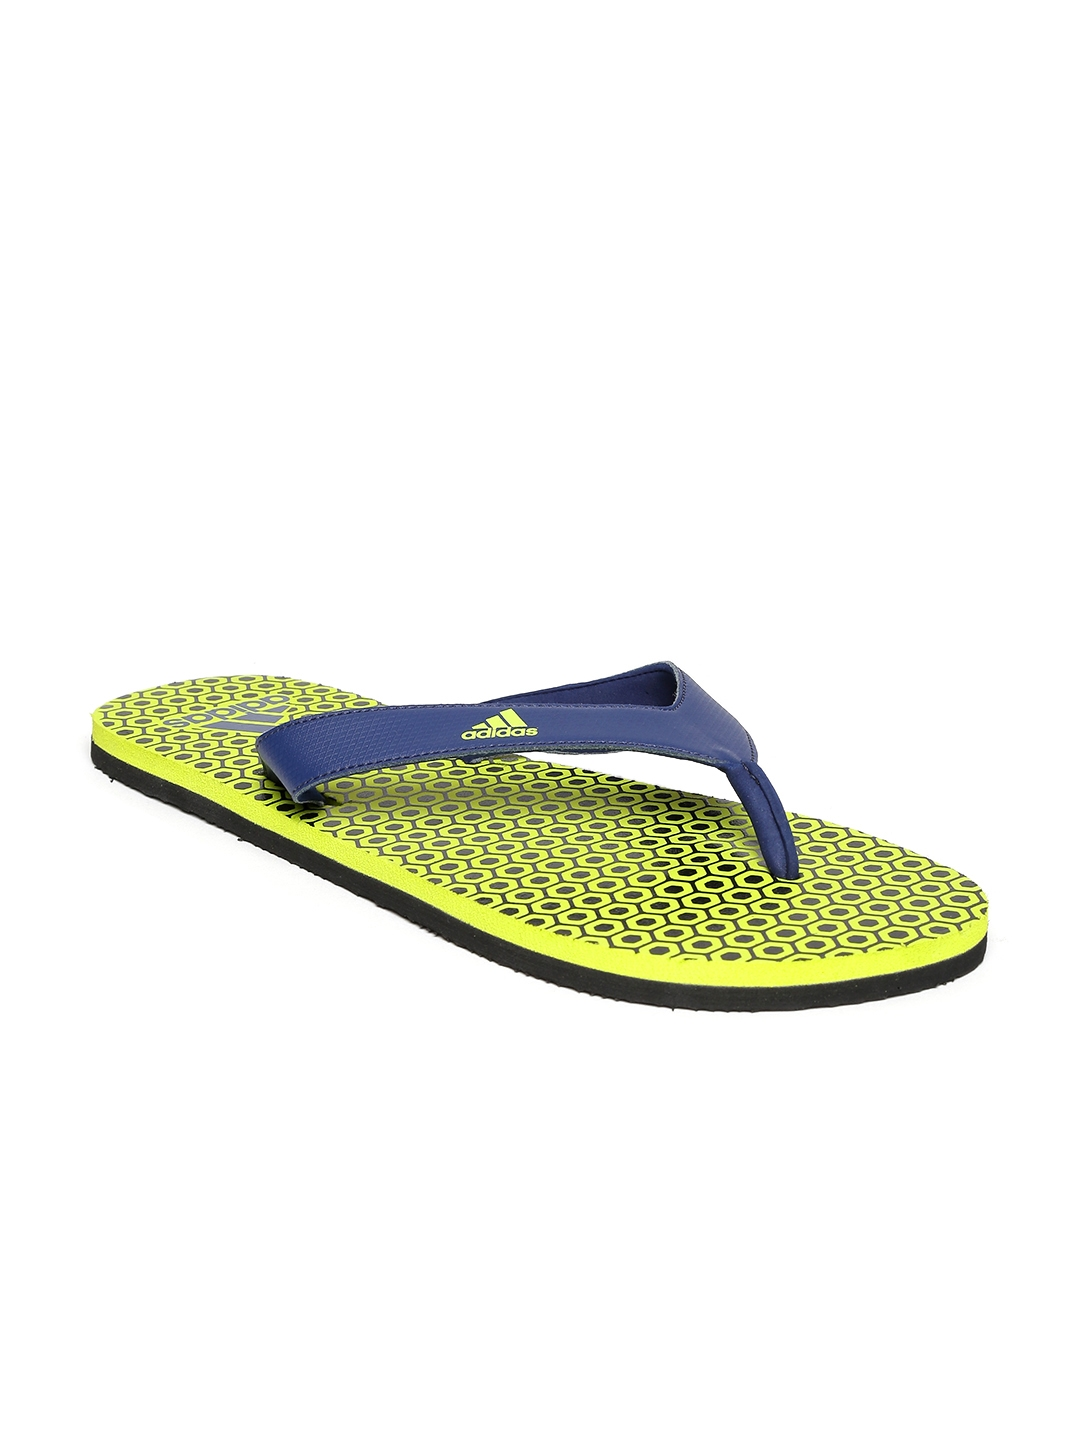 3bd012c08a0d2 Buy ADIDAS Men Navy   Green Beach Print Max Out Flip Flops - Flip ...